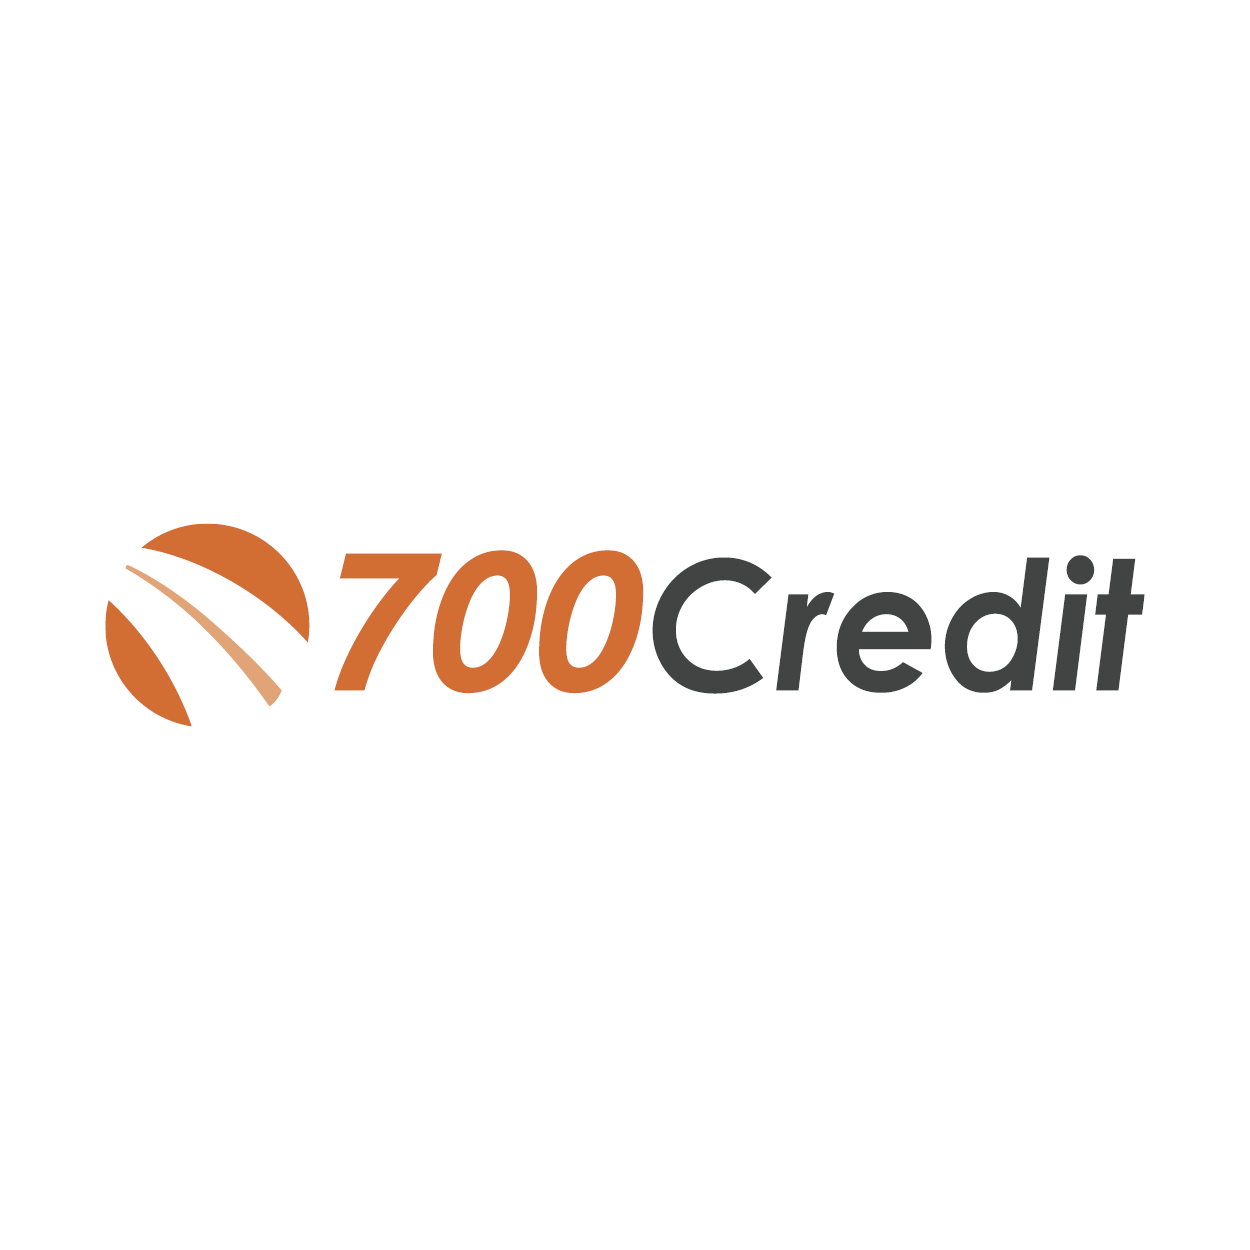 700Credit to Offer Instant Income and Employment